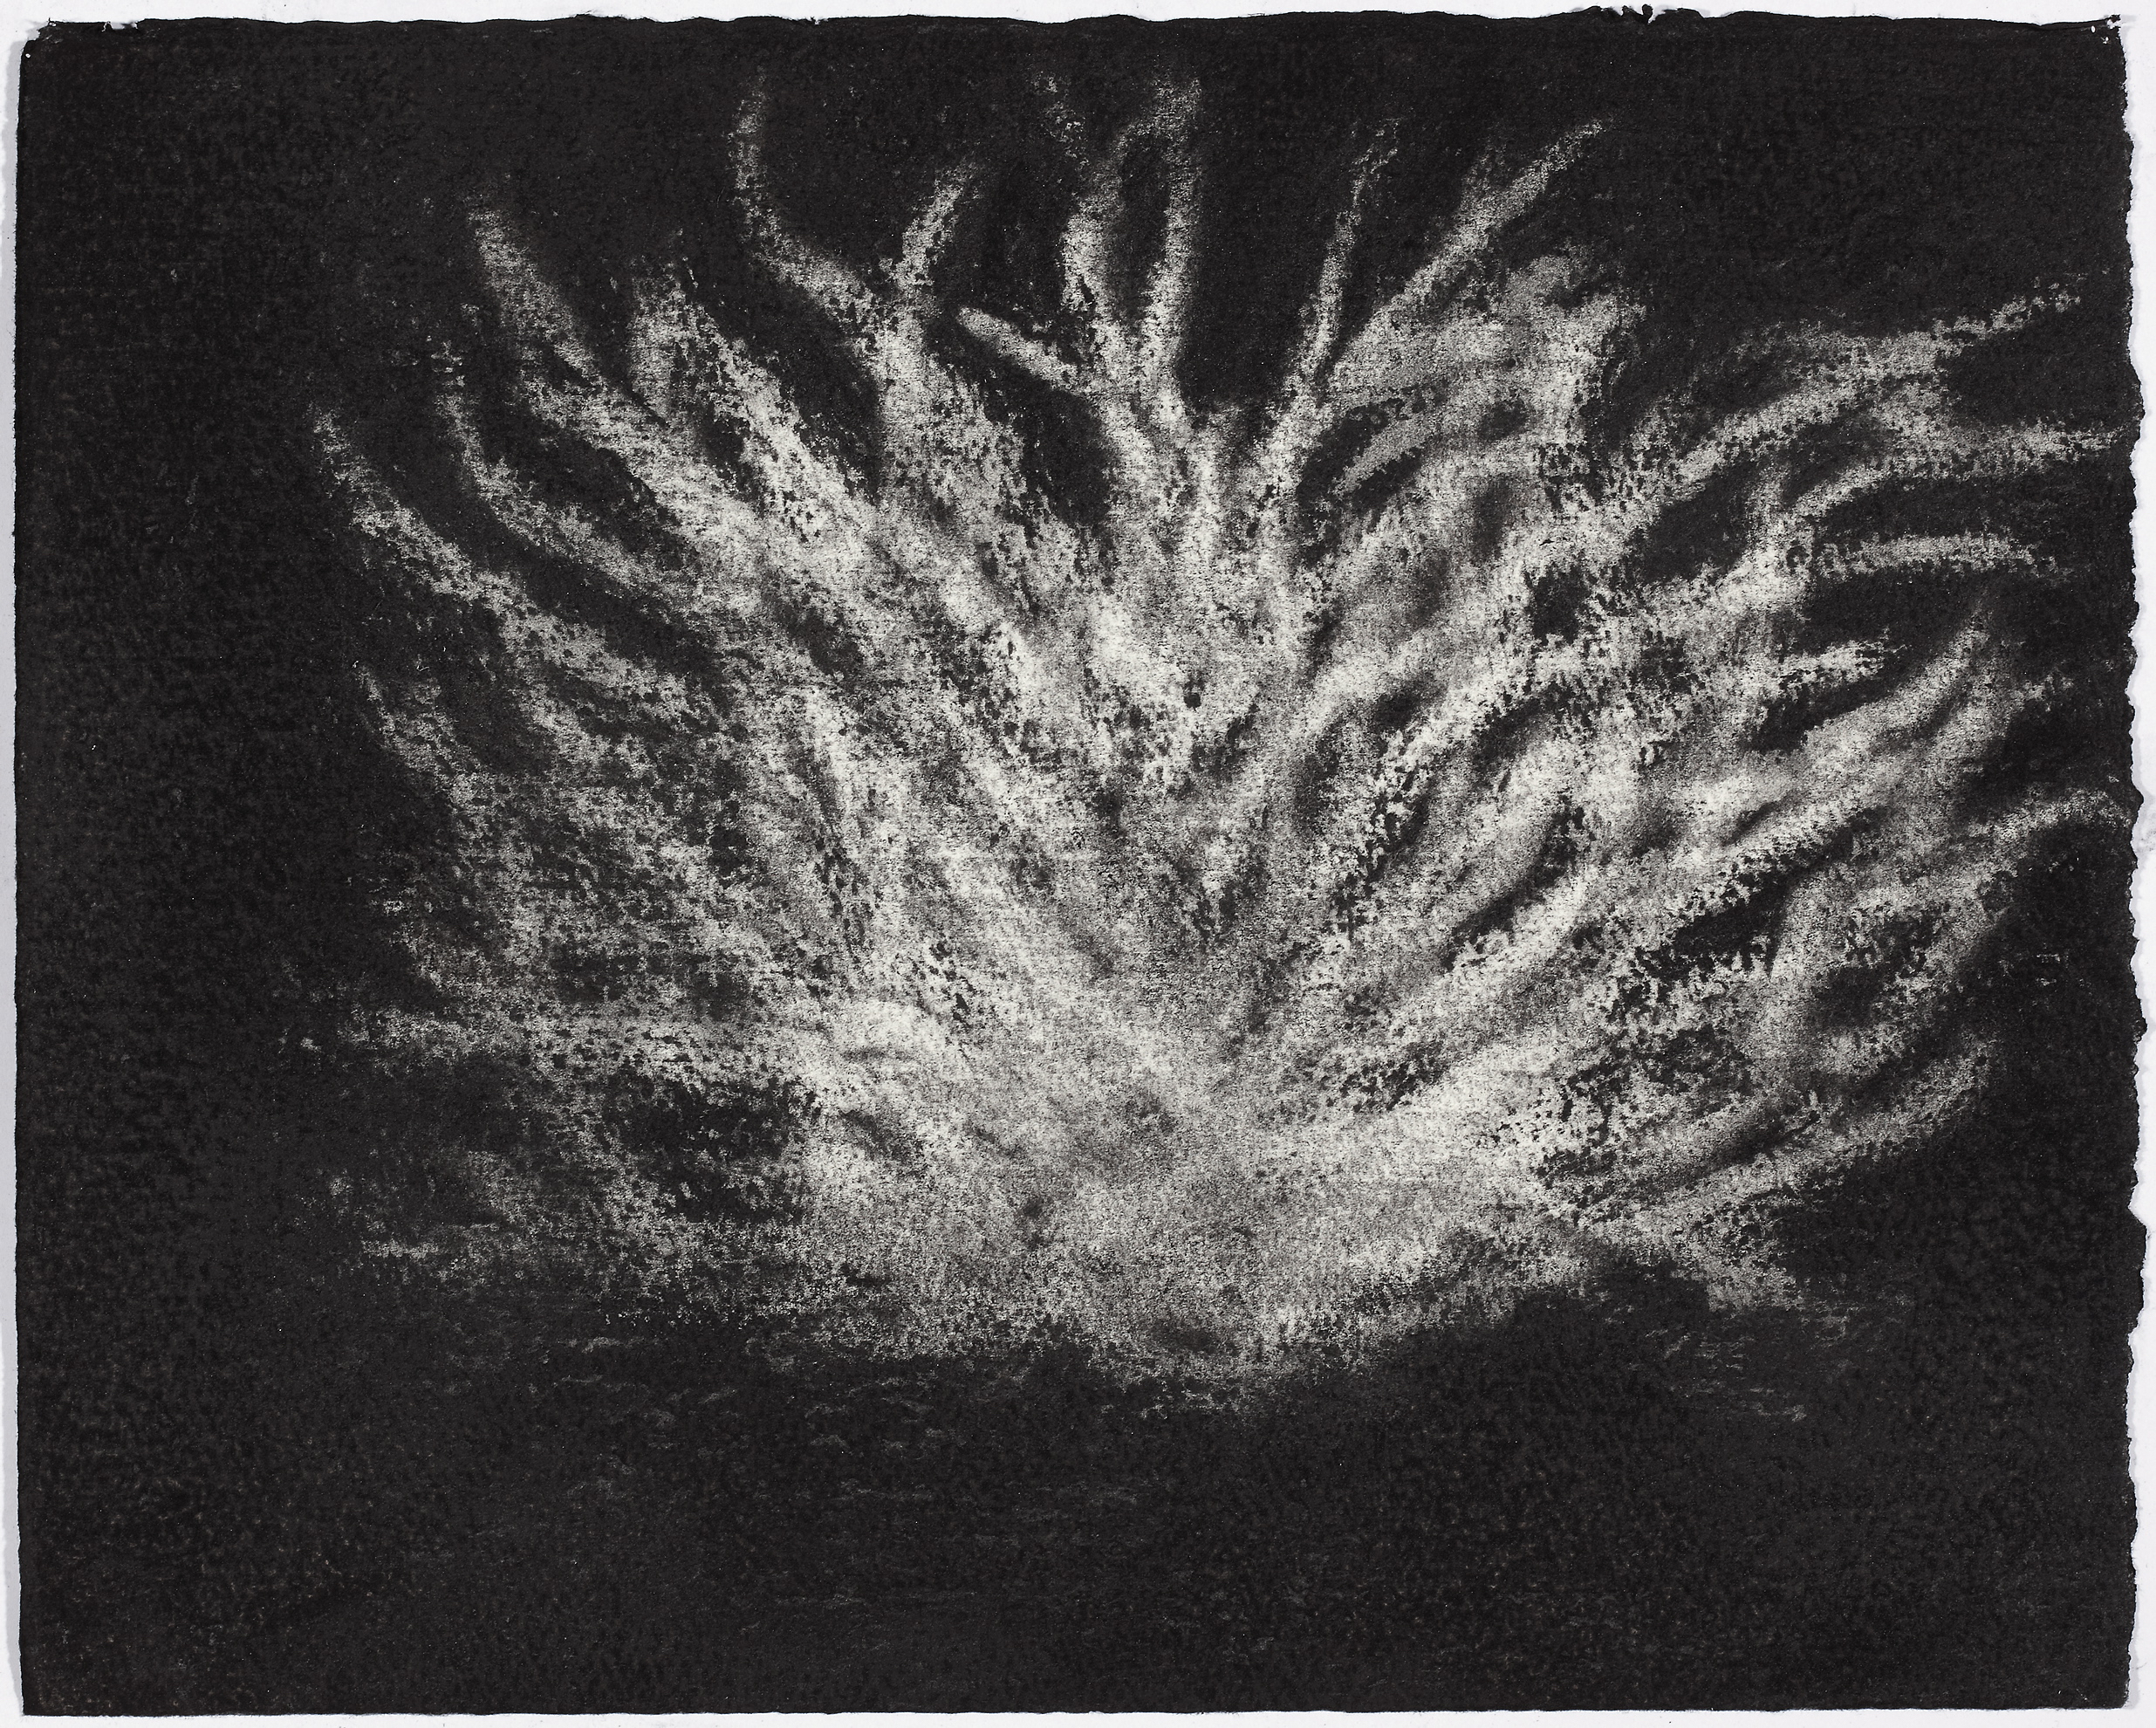 charcoal on paper, 26.5 x 33cm, collection The Art Gallery of New South Wales